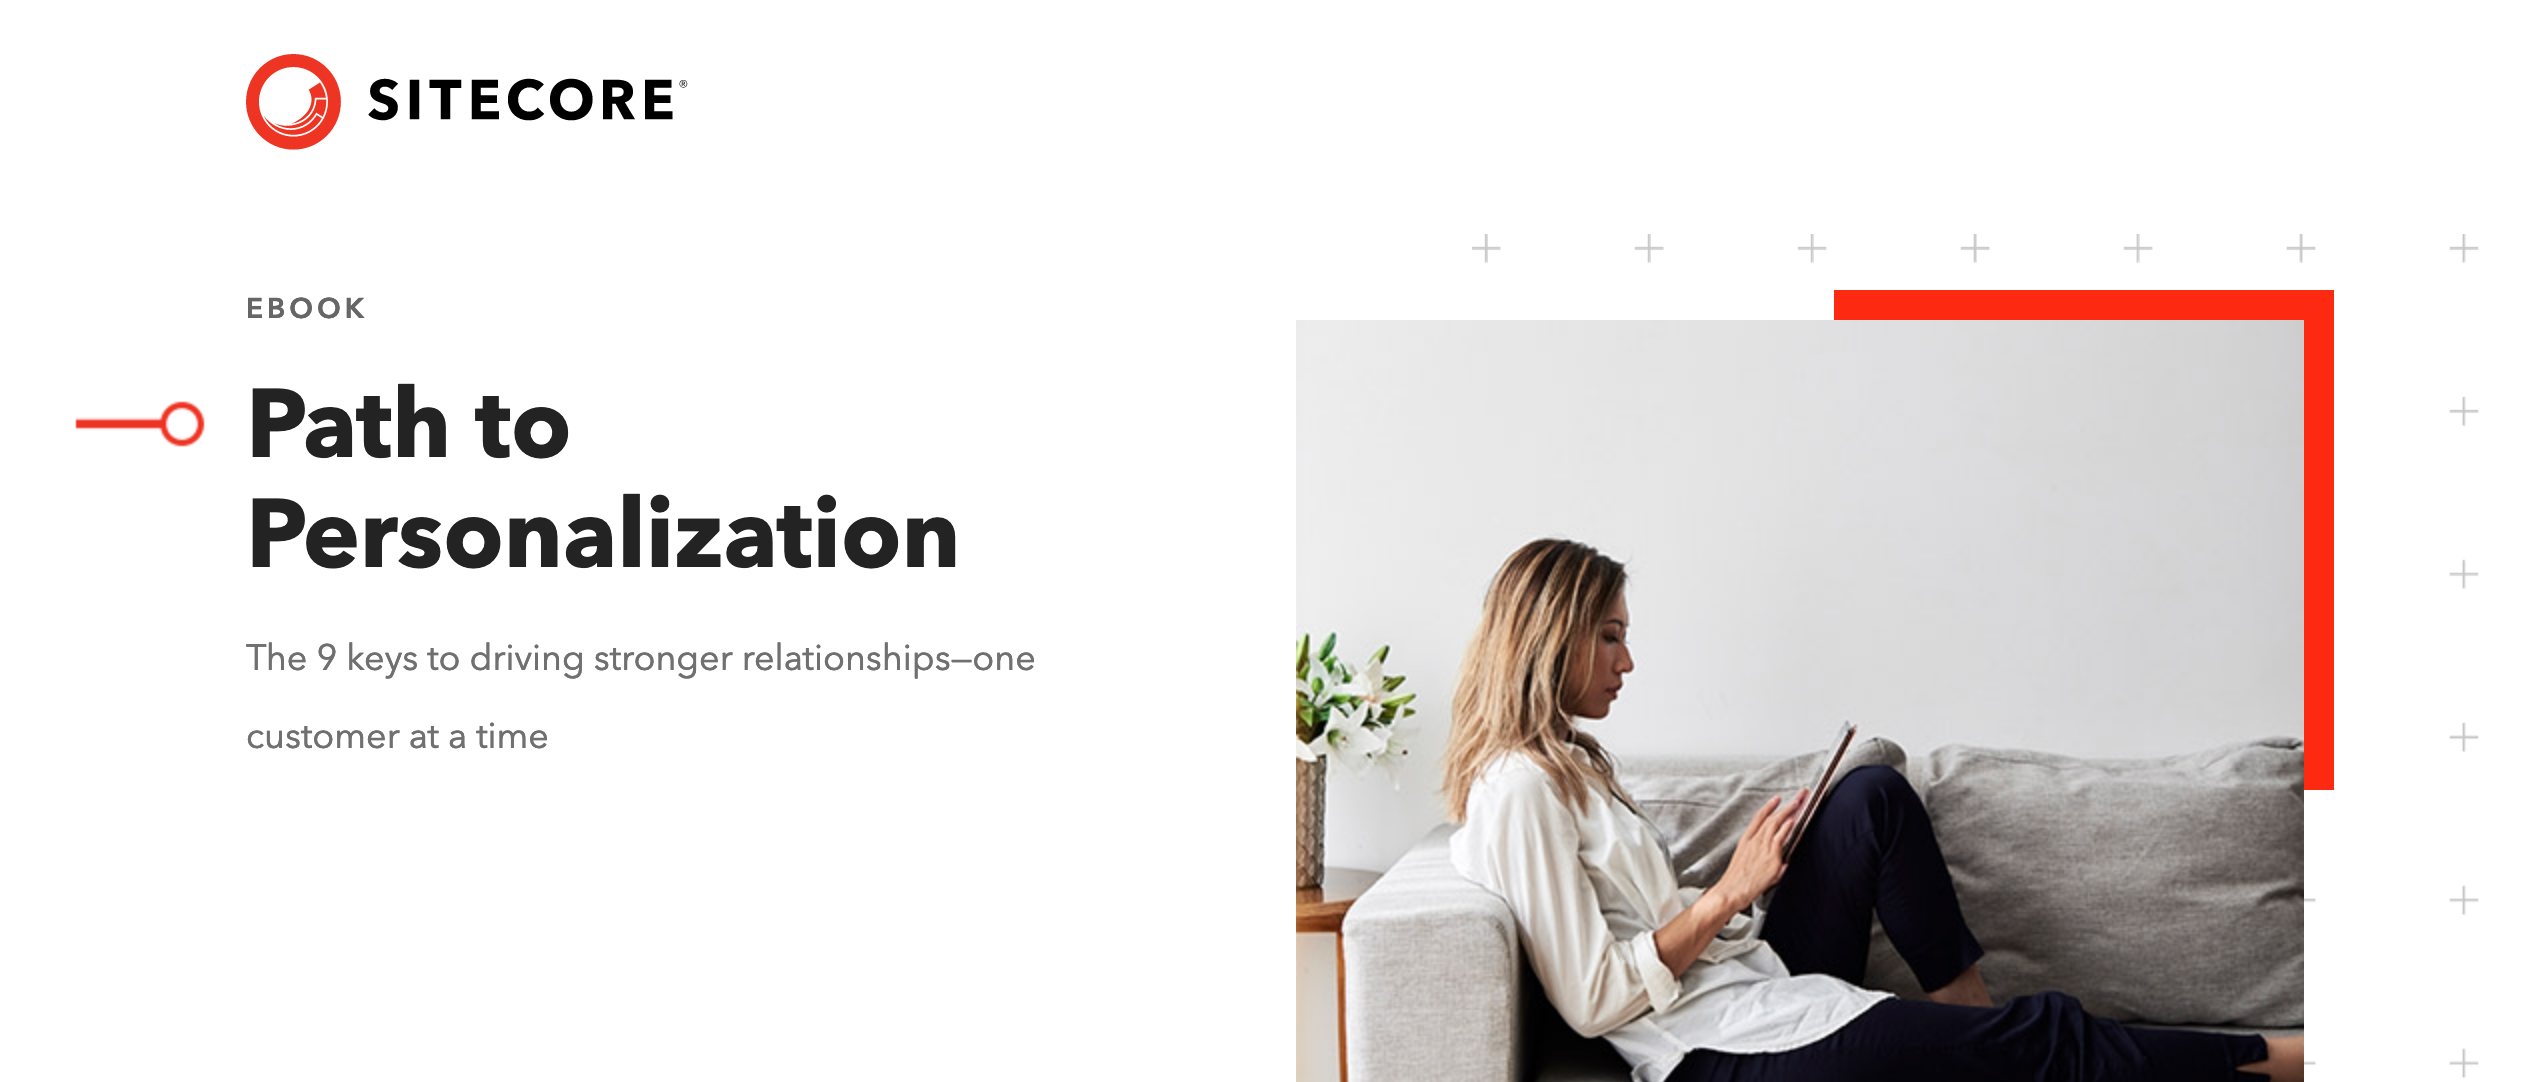 Path to Personalization - Path to Personalisation